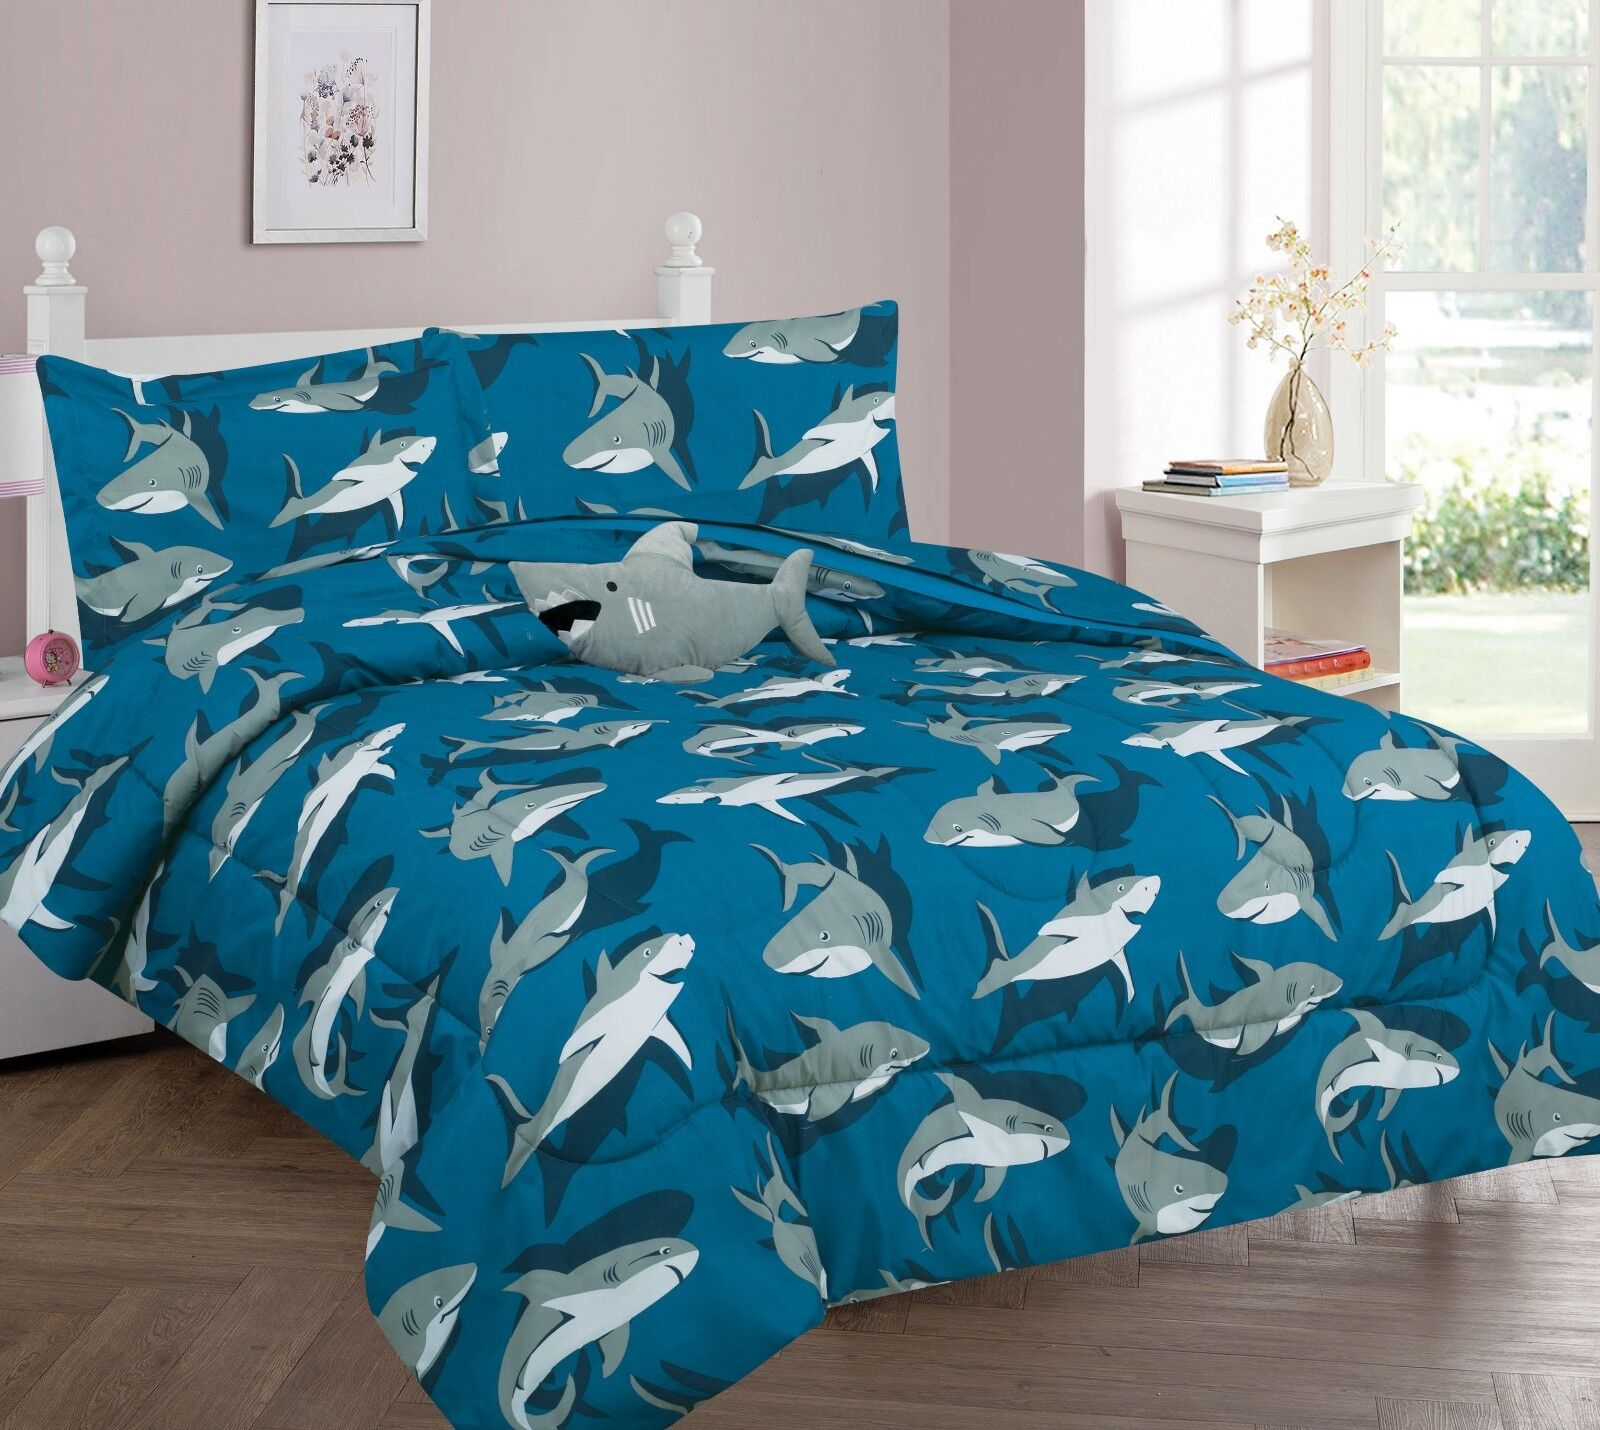 Shark Blue Grey Printed Complete Bed Comforter set For Boys